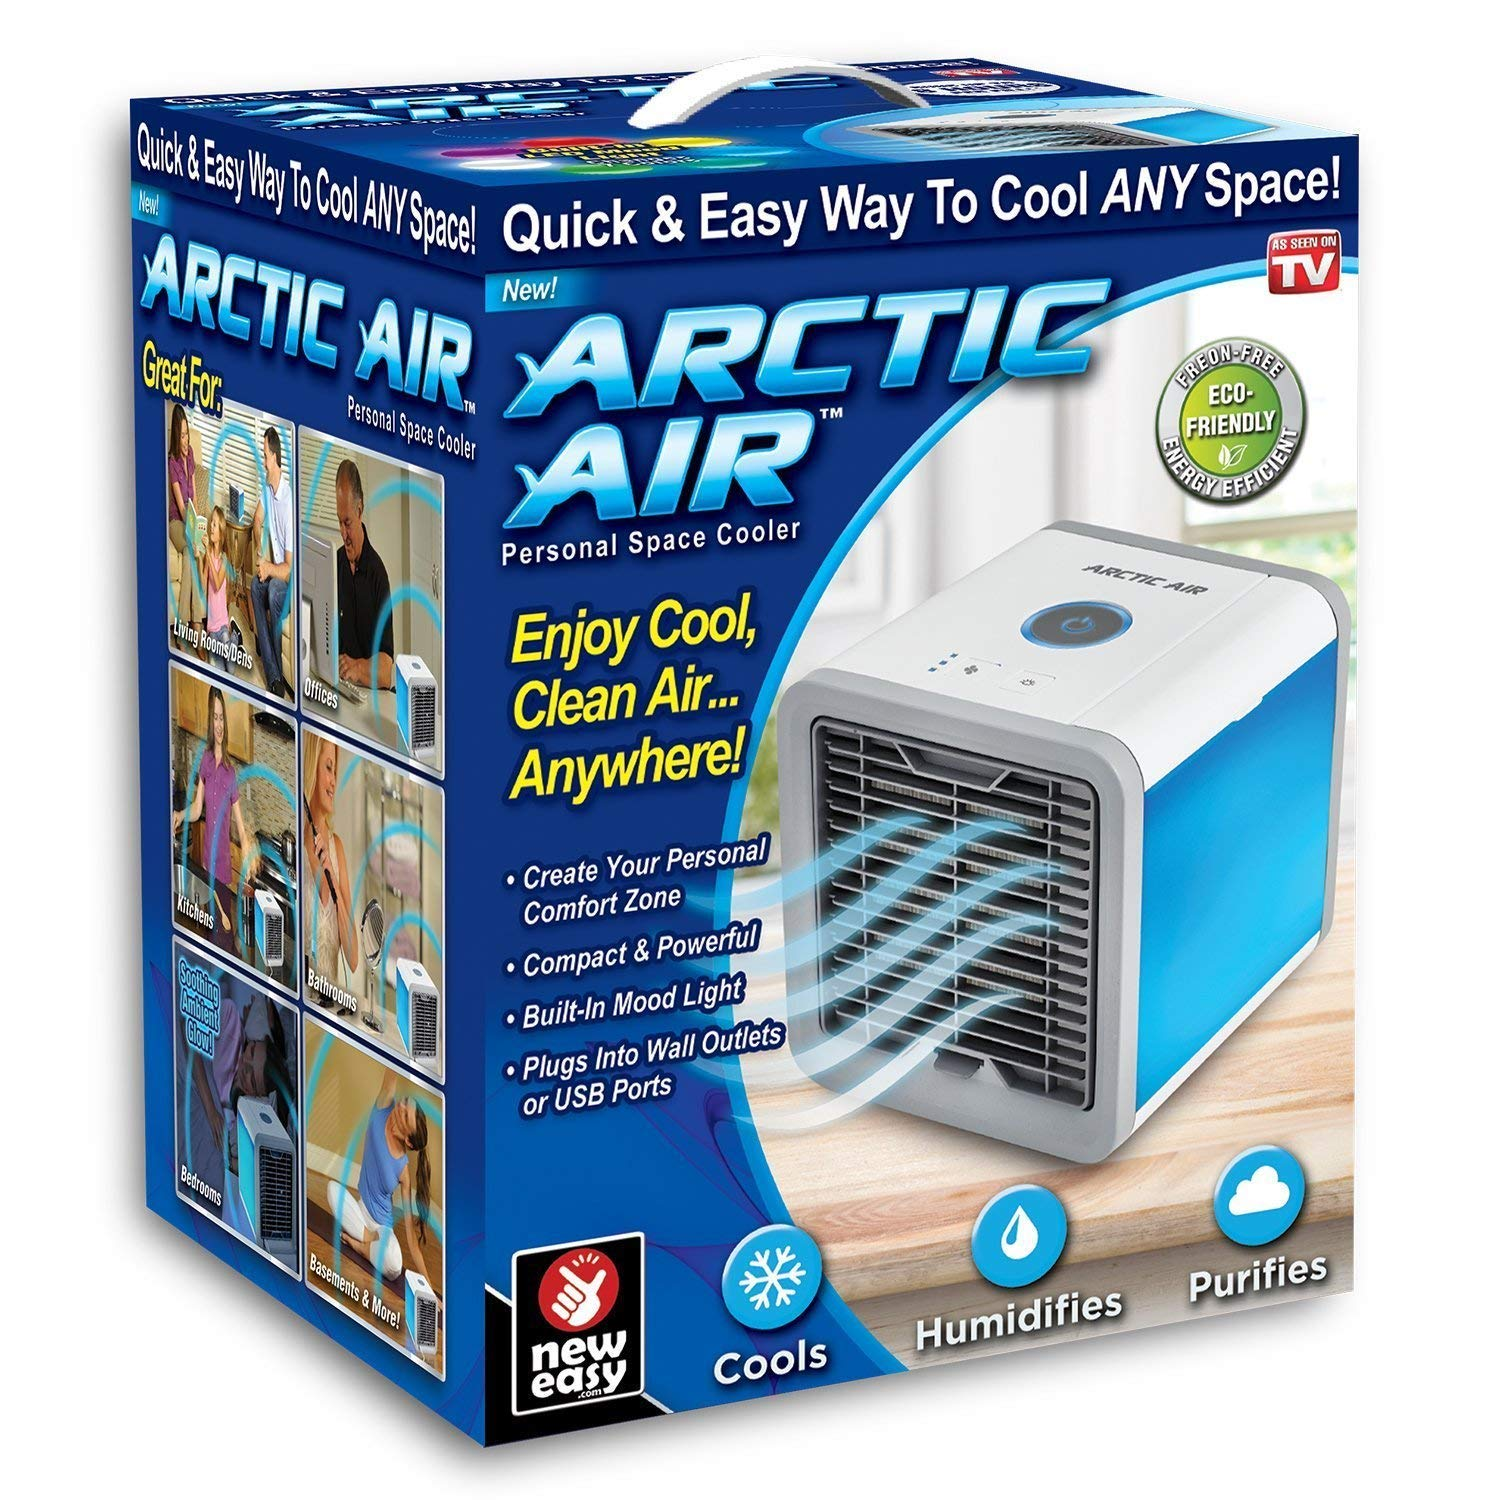 Arctic Air Personal Space Cooler, 3 in 1 USB Mini Portable Air Conditioner | The Quick & Easy Way to Cool Any Space, As Seen On TV by WANG